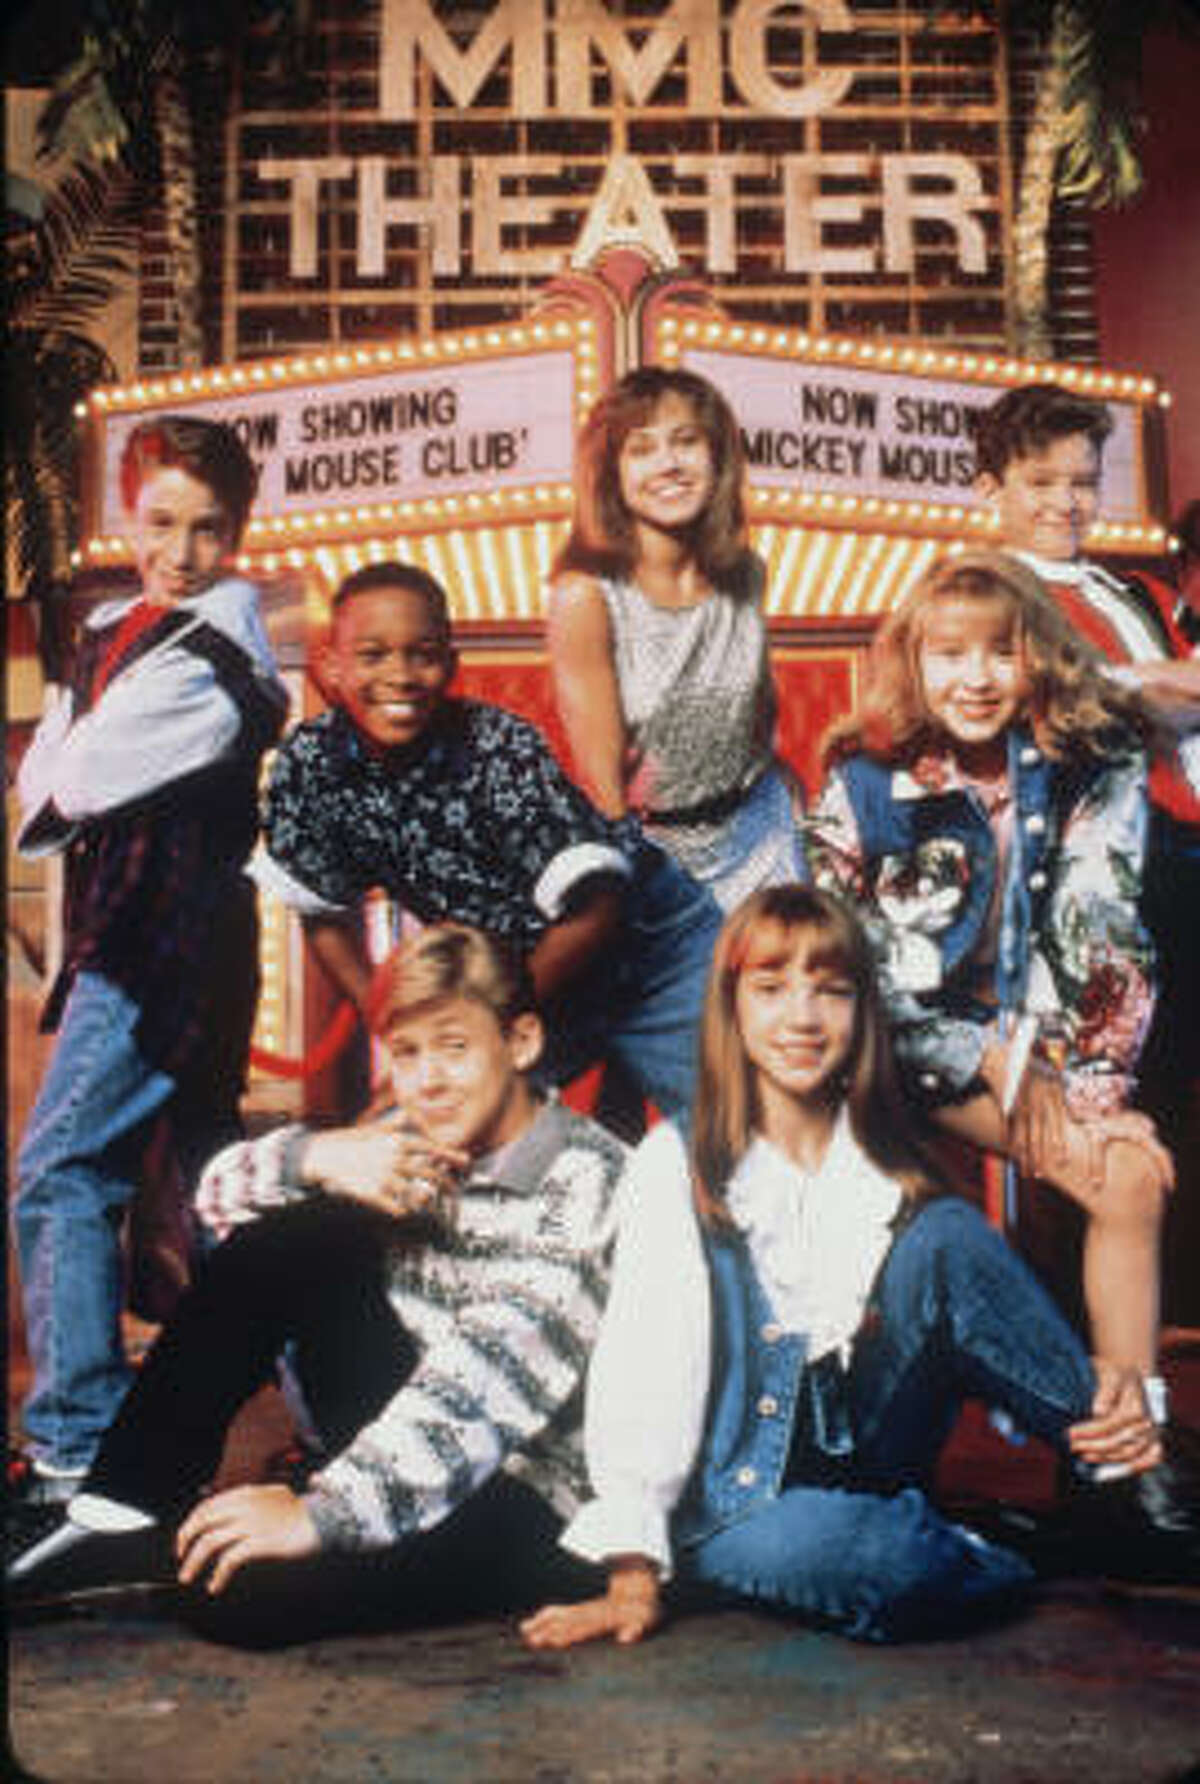 1995: Britney Spears and other members of the Mickey Mouse Club. Spears met her former sweetheart, Justin Timberlake, who was also a Mouseketeer.